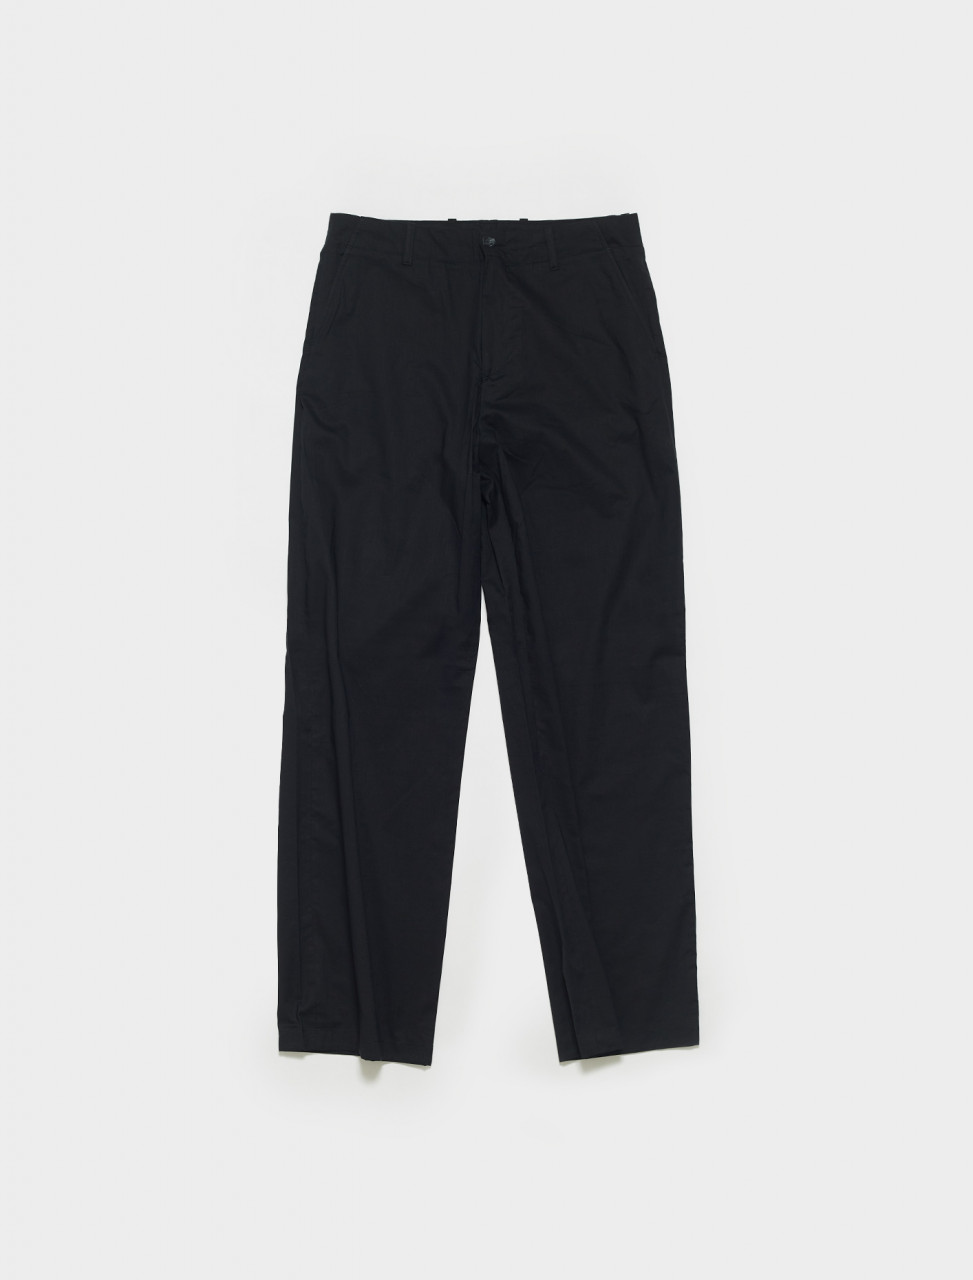 M2204BBL OUR LEGACY BORROWED CHINO IN BLACK VOILE